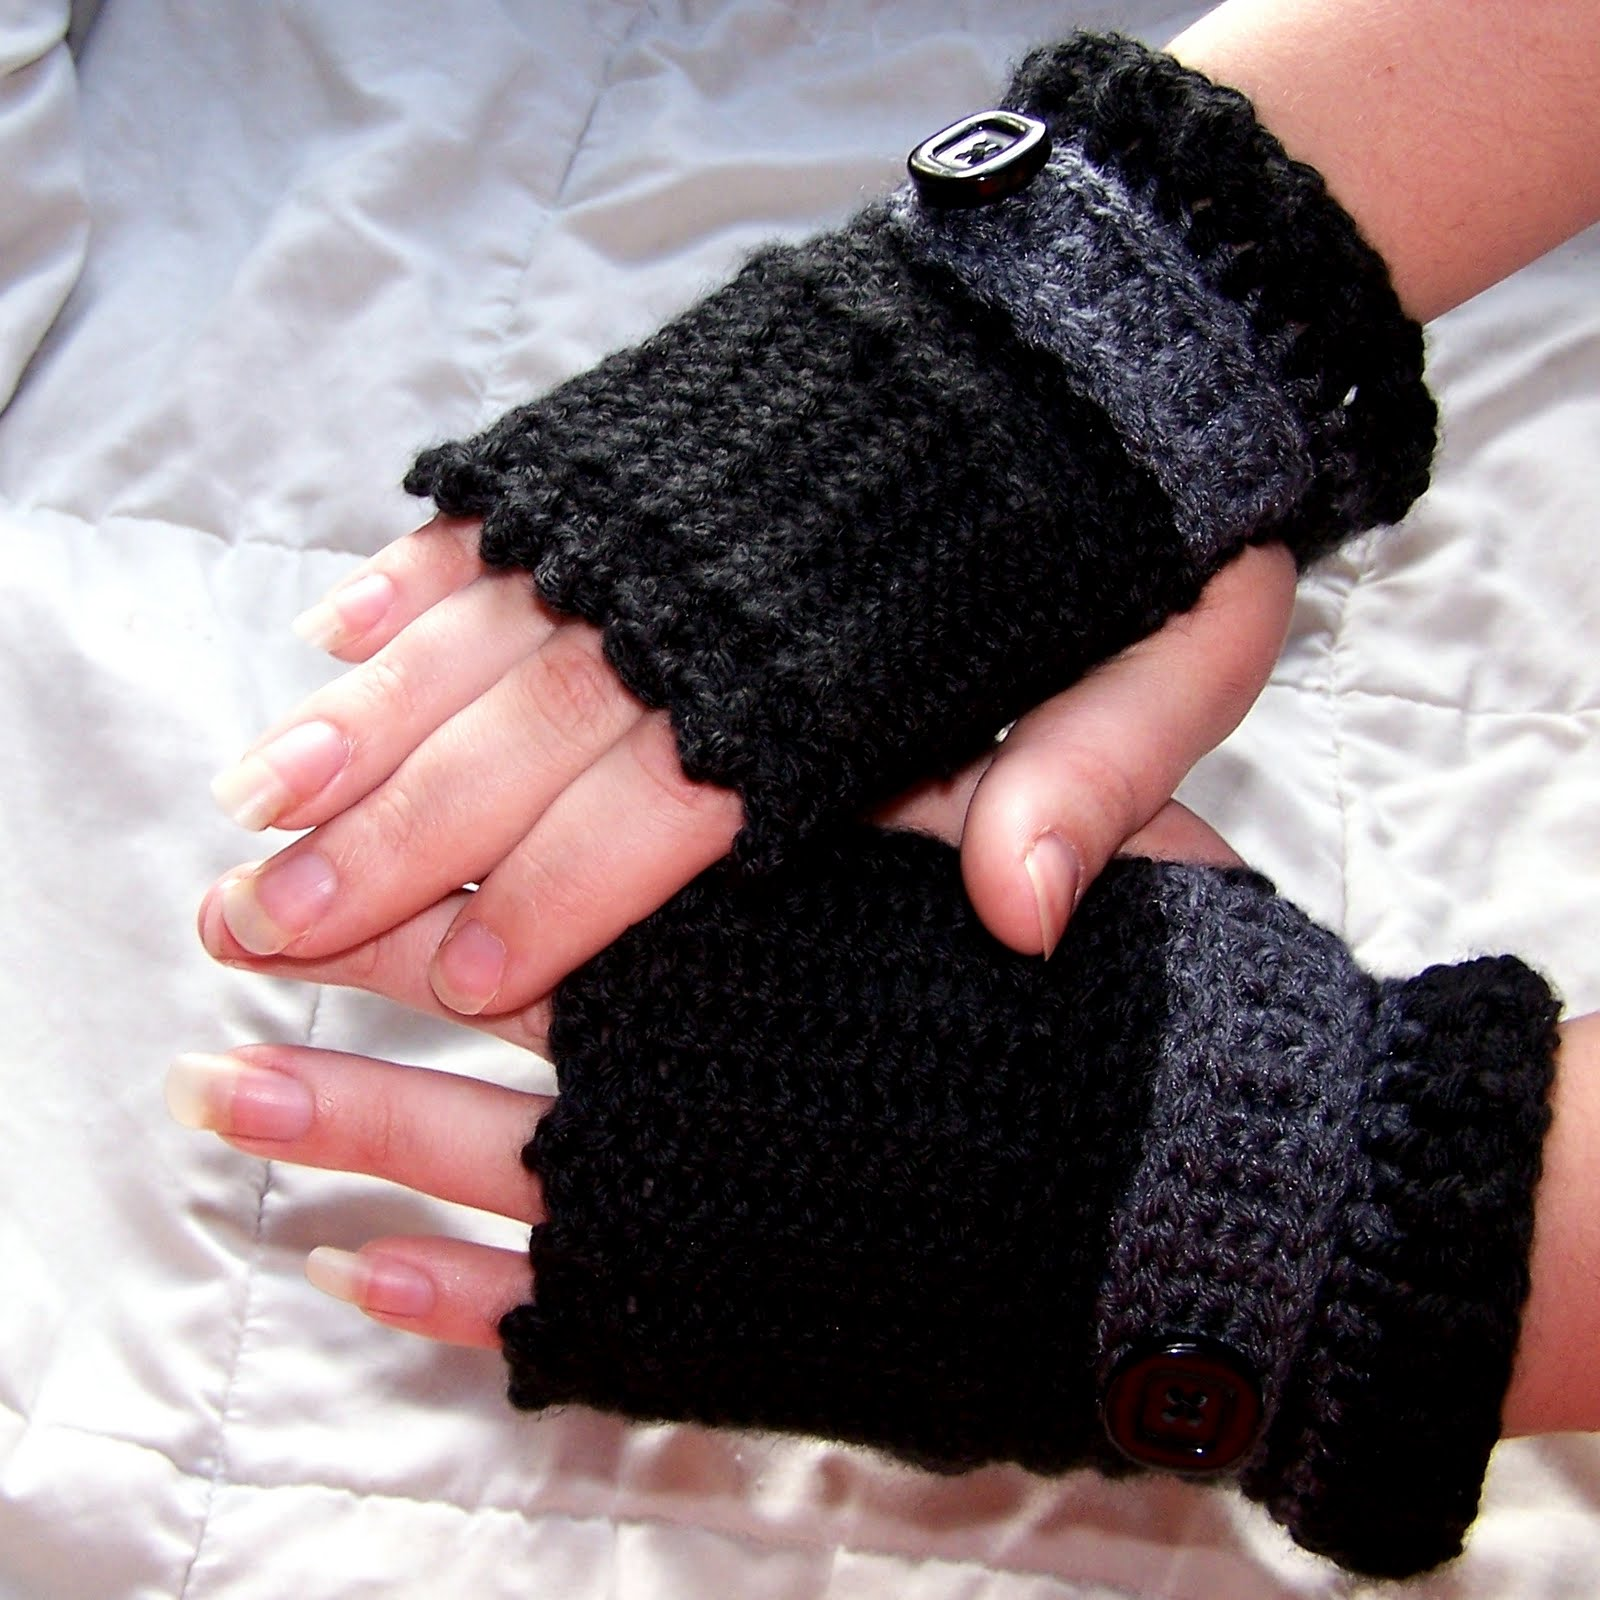 Hooked On Yarn: Showcase of Fingerless Gloves